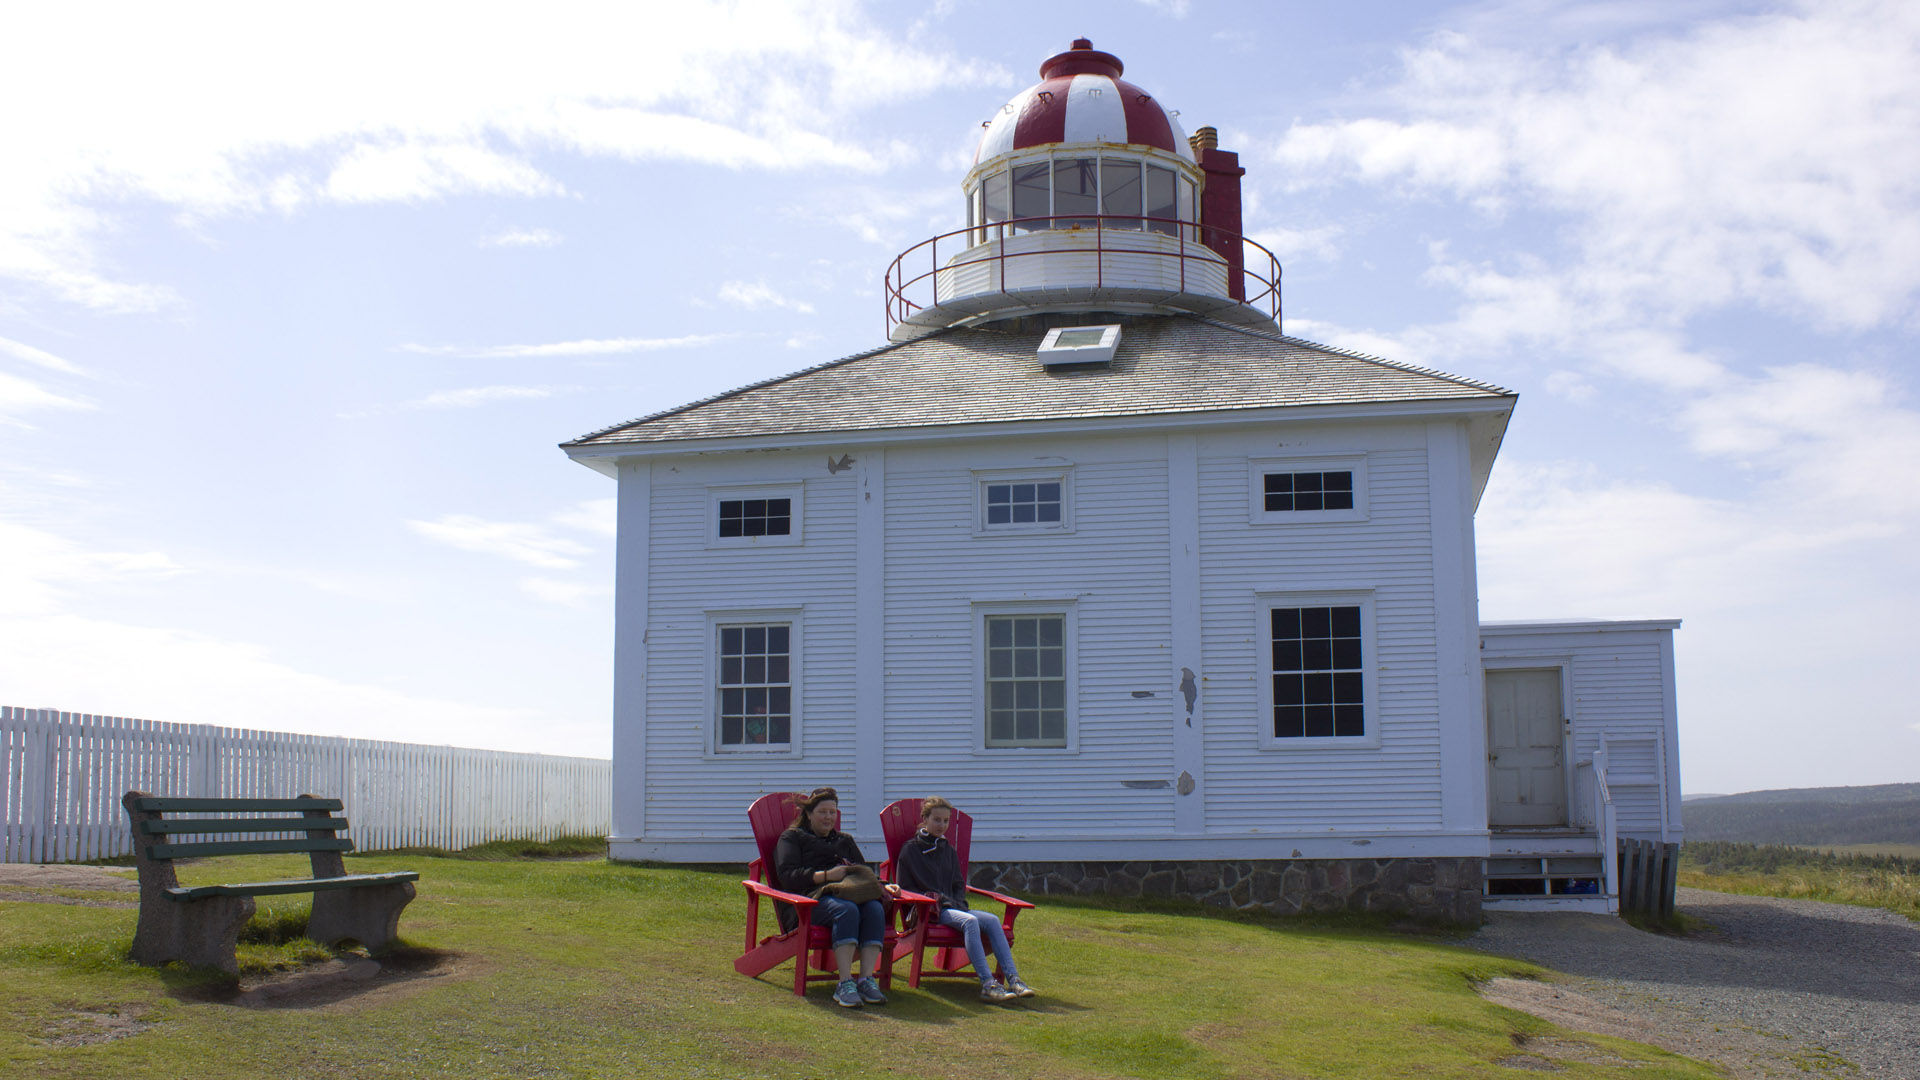 MH_Donna_Amy_Cape Spear_7848